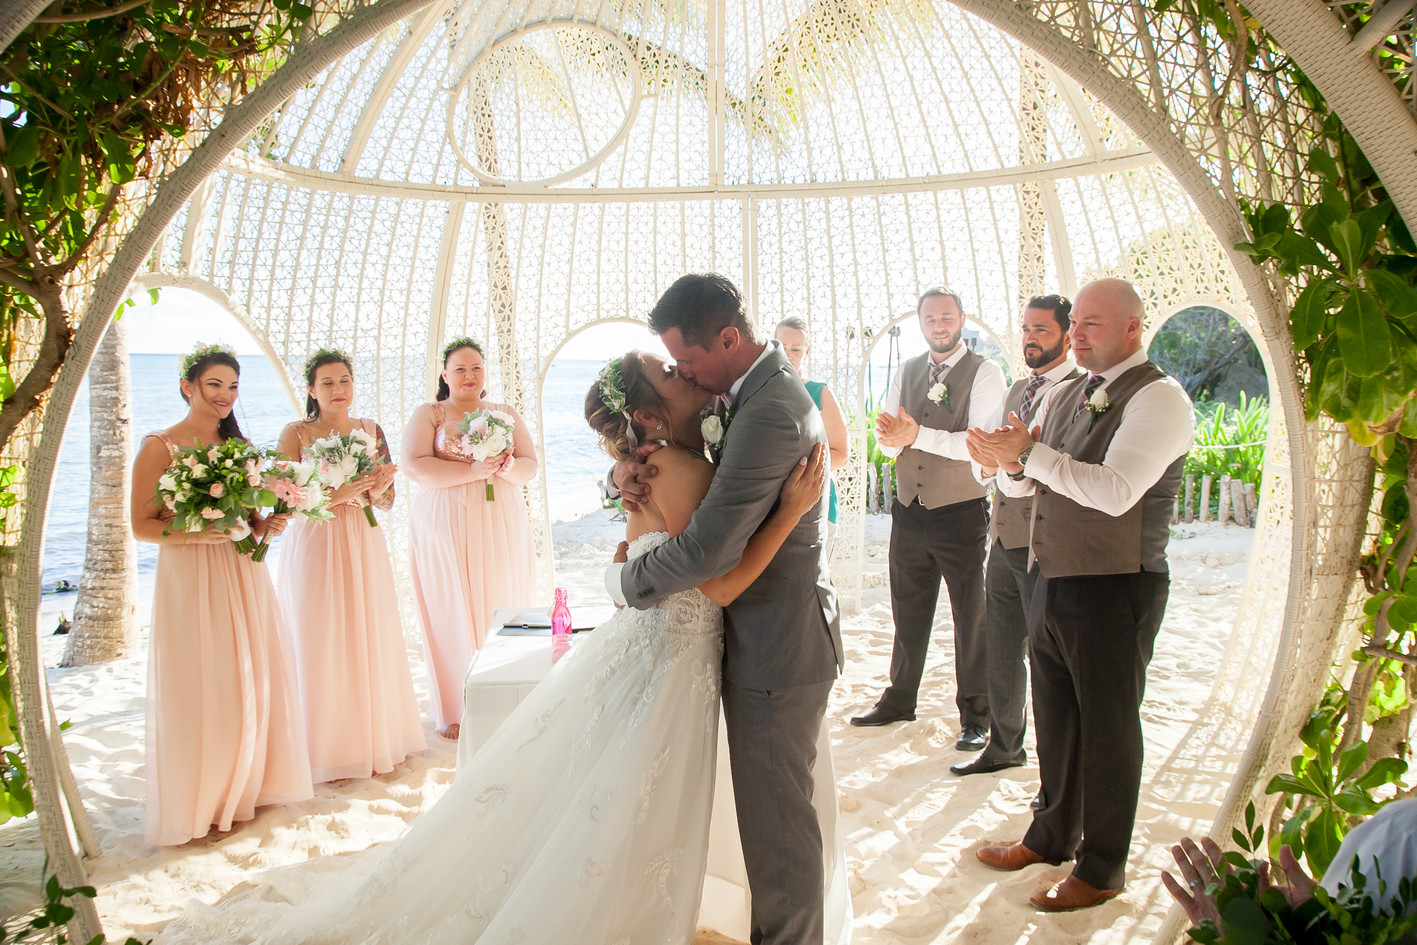 Husband and wife kiss for the first time as a married couple on a Mexico beach. Destination wedding. Wedding party standing around them.